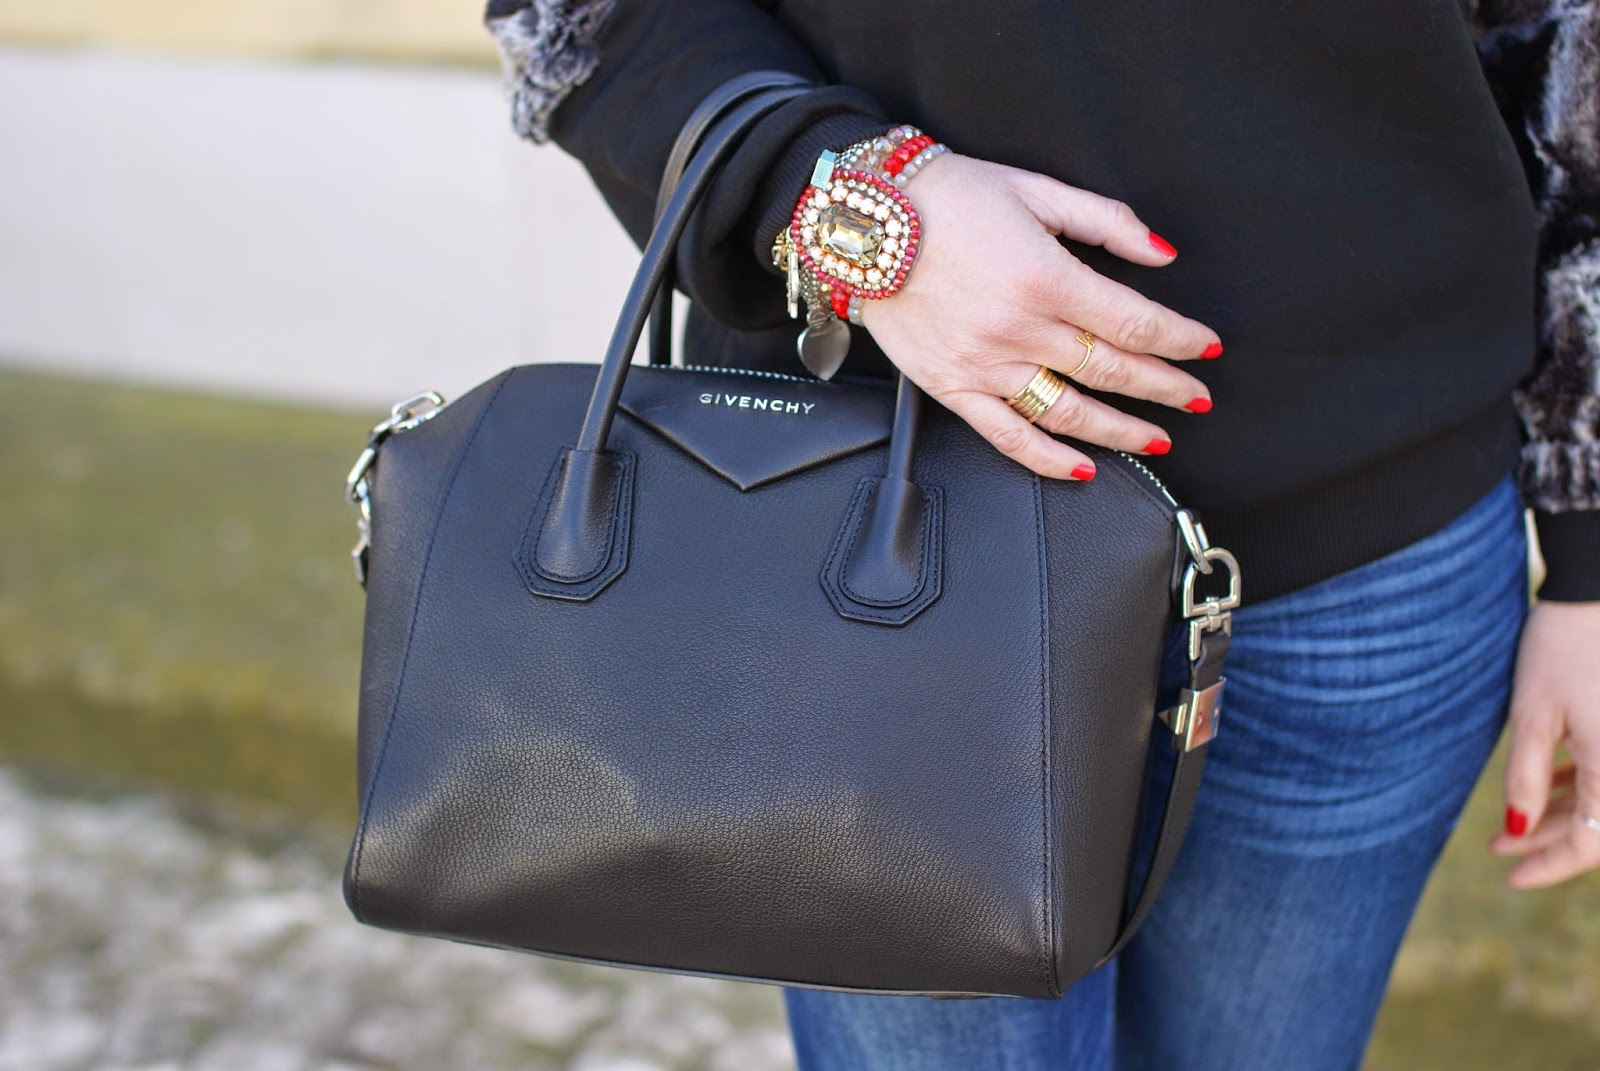 Givenchy Antigona piccola, Givenchy Antigona bag small, Fashion and Cookies fashion blog, fashion blogger